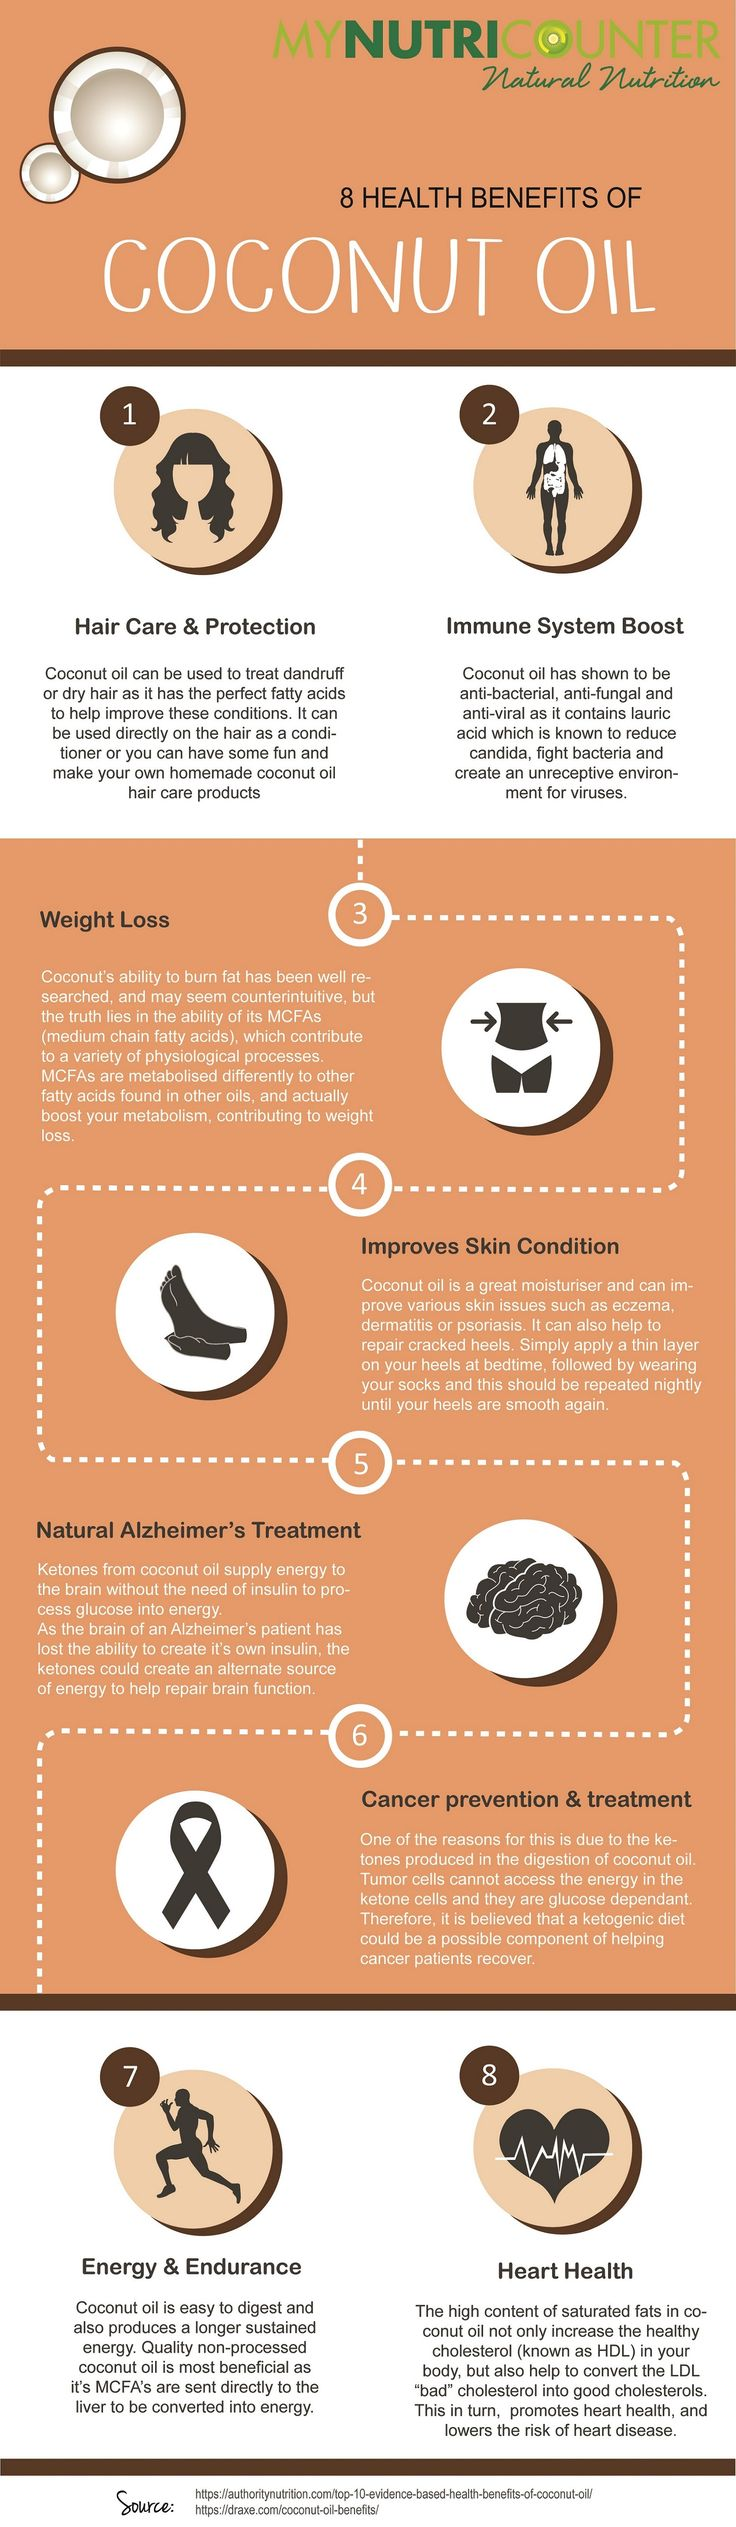 Health Benefits of Coconut Oil by MyNutriCounter